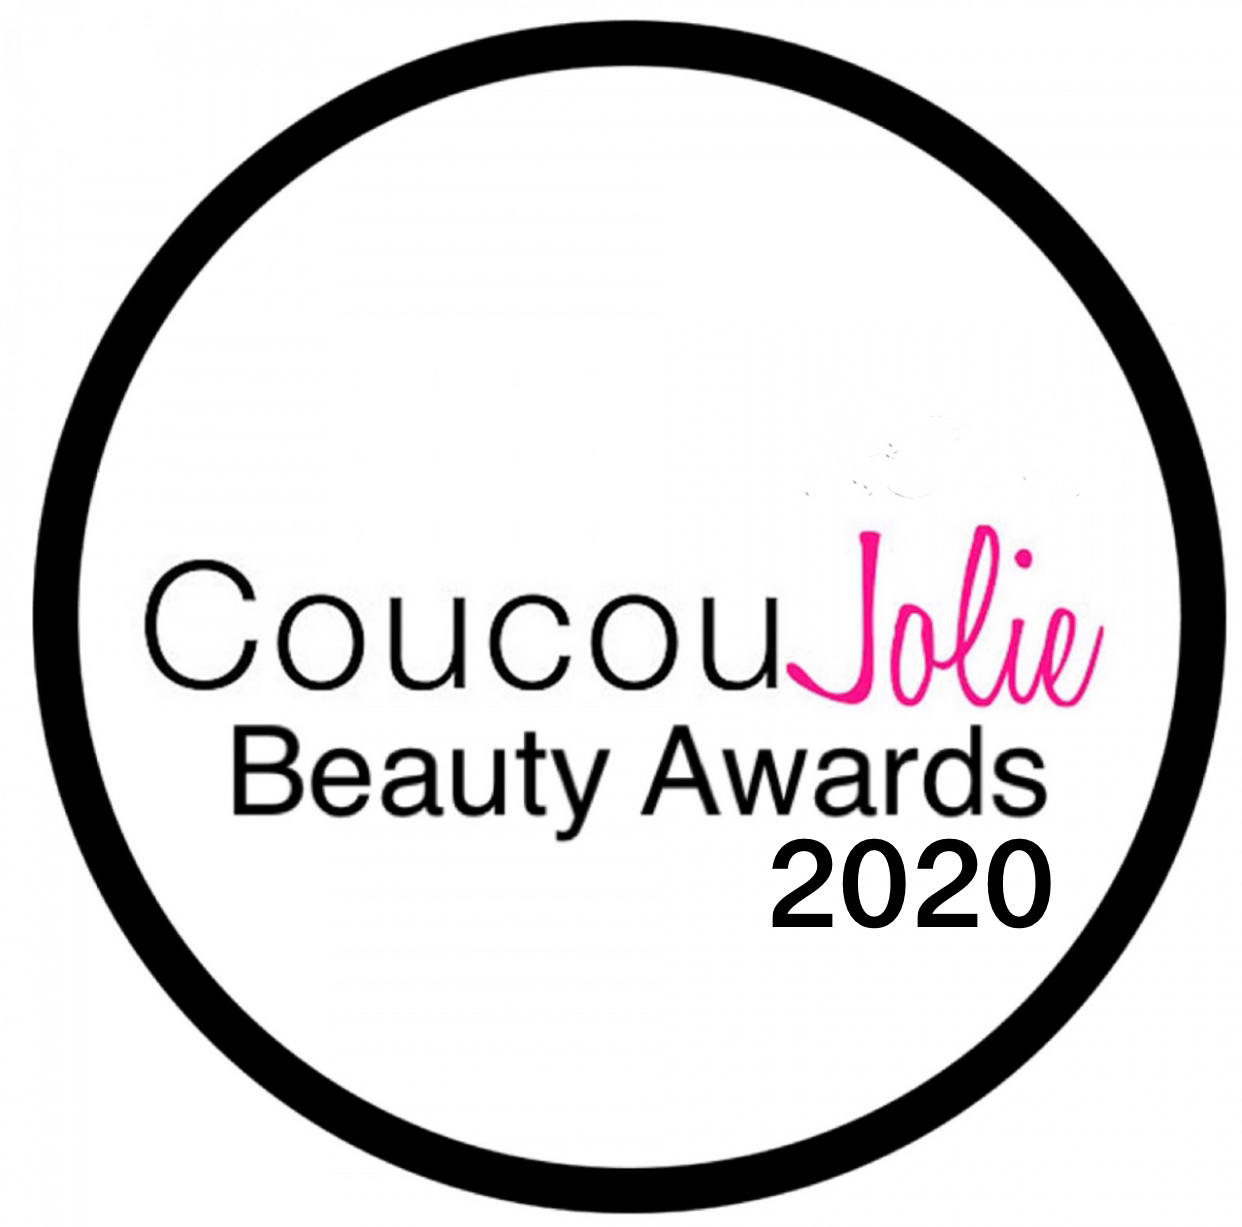 2020 Beauty Awards